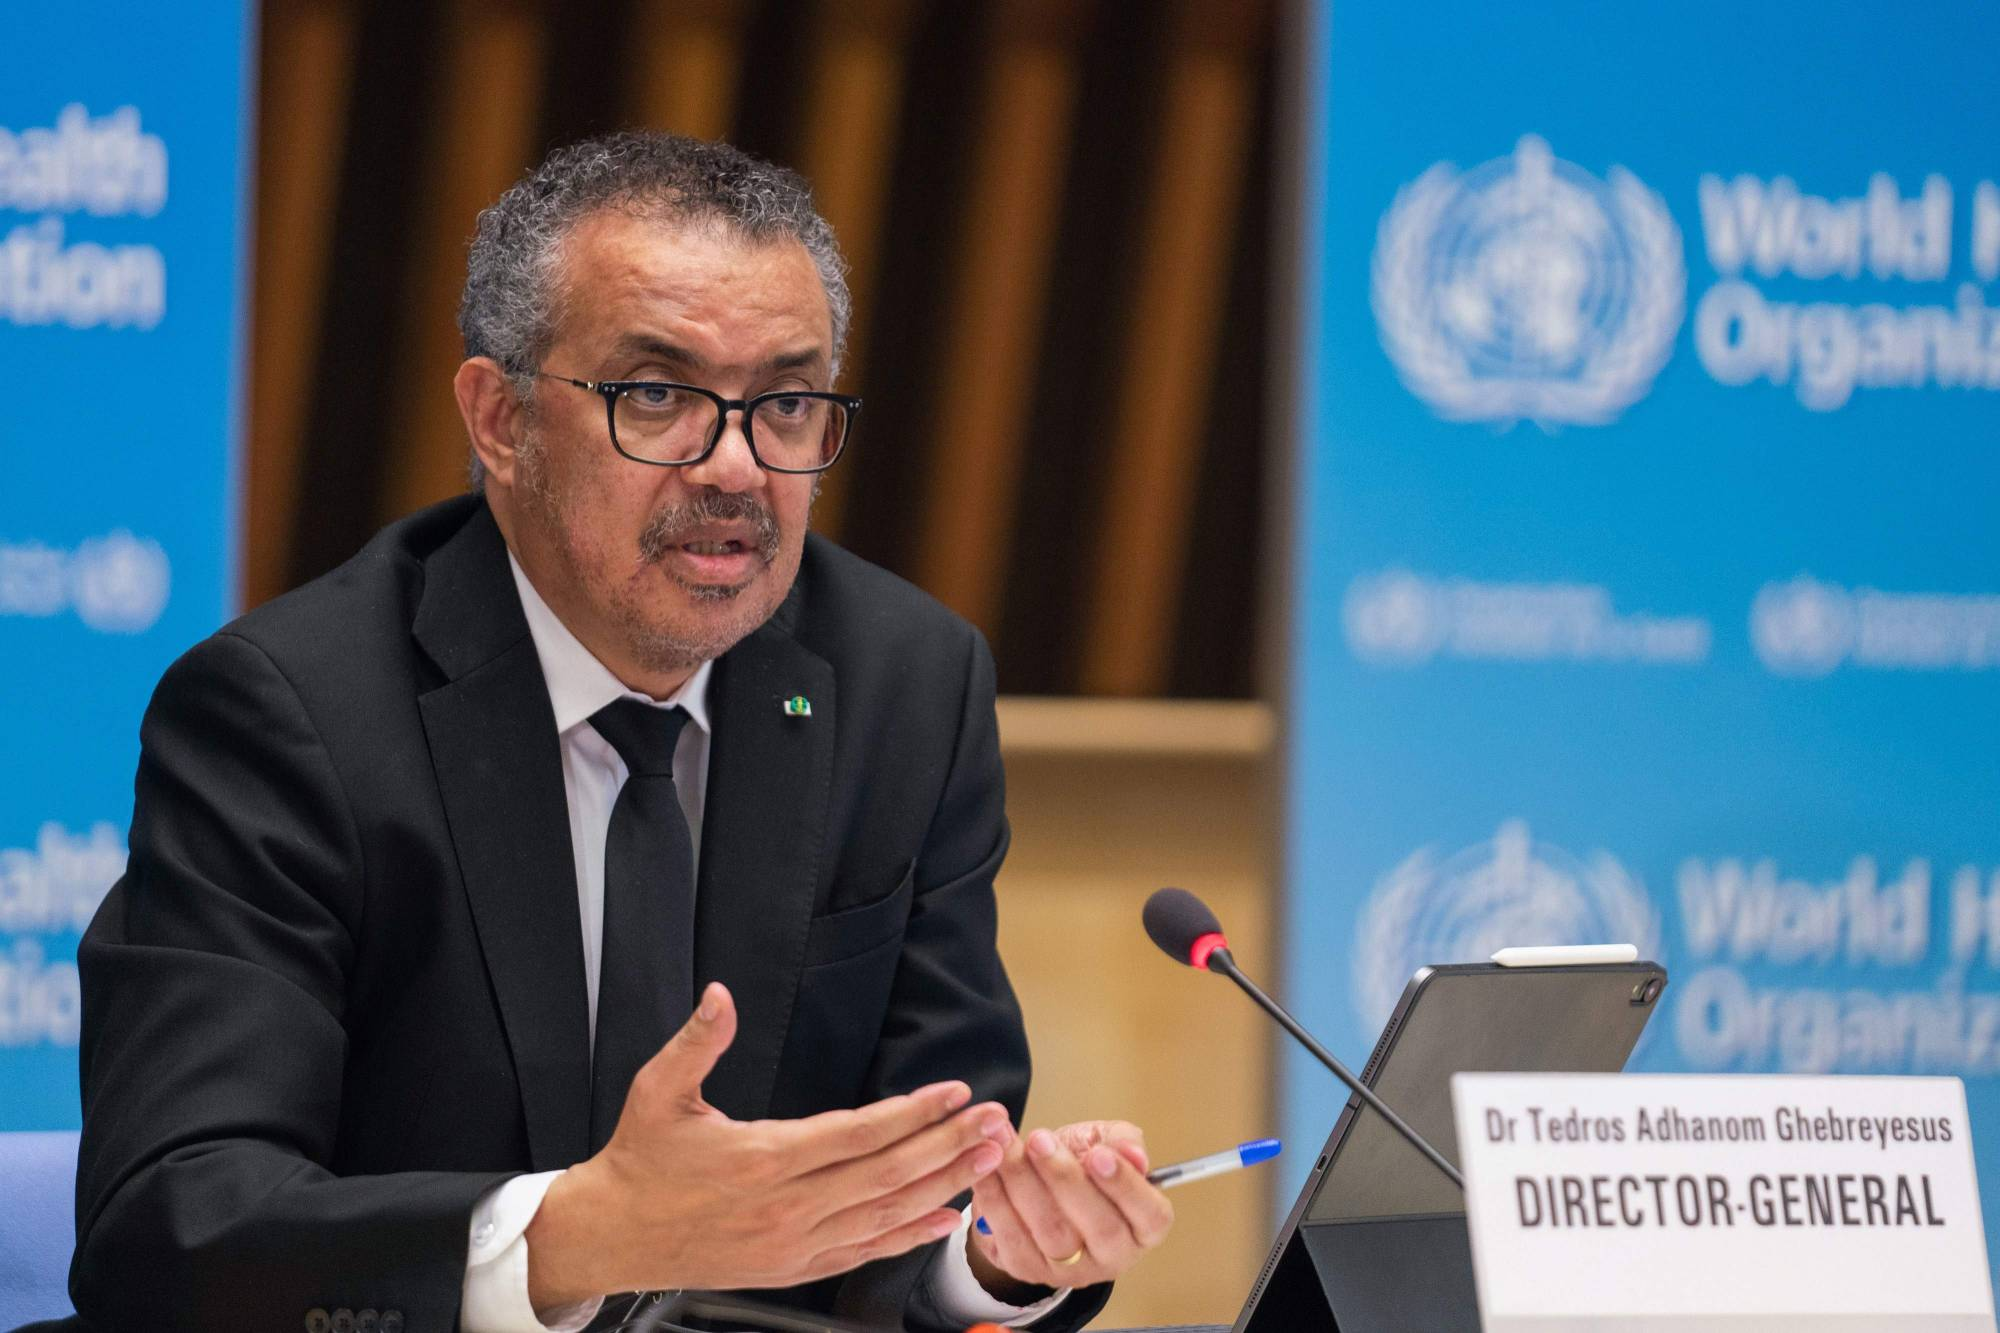 WHO Director-General Praises Qatar's Support for Poor Countries to Confront COVID-19 Pandemic